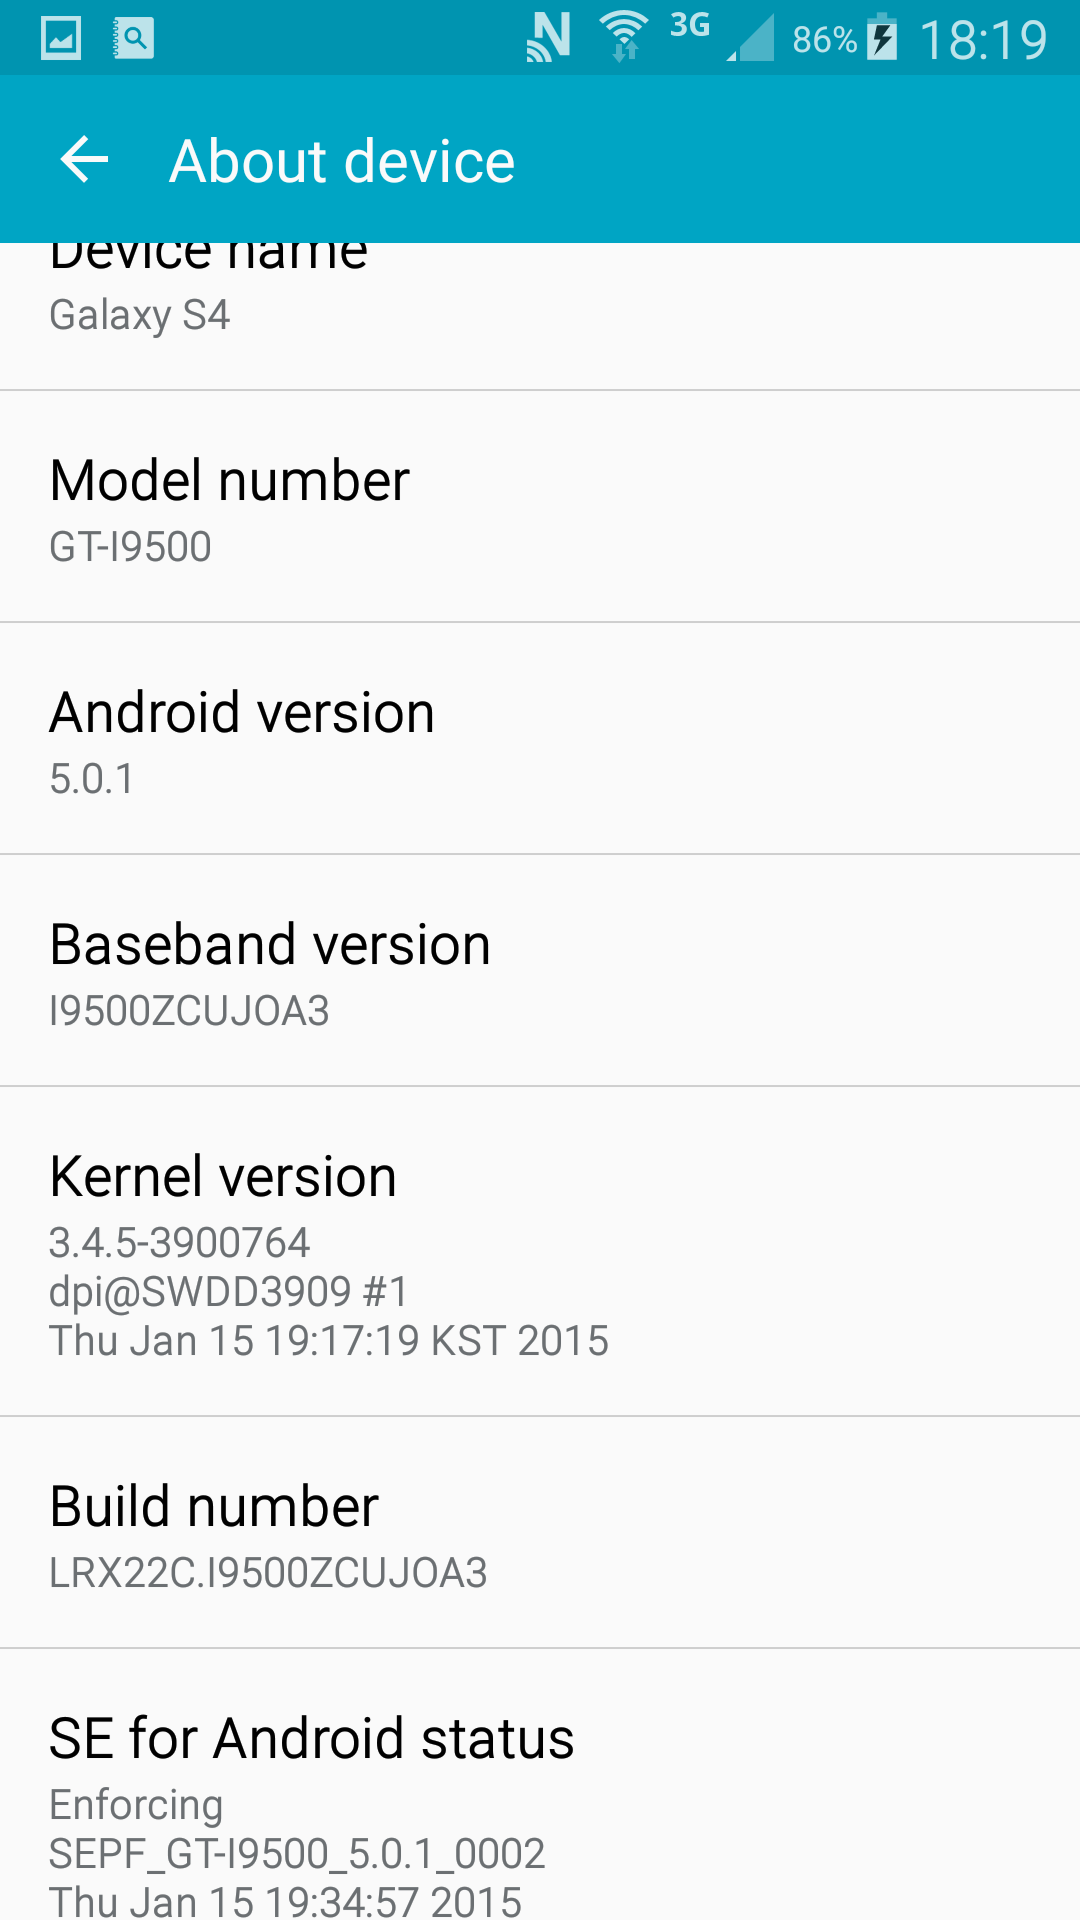 Android 5.0.1 Lollipop official build (LRX22C) leaks for Galaxy S4: How to install